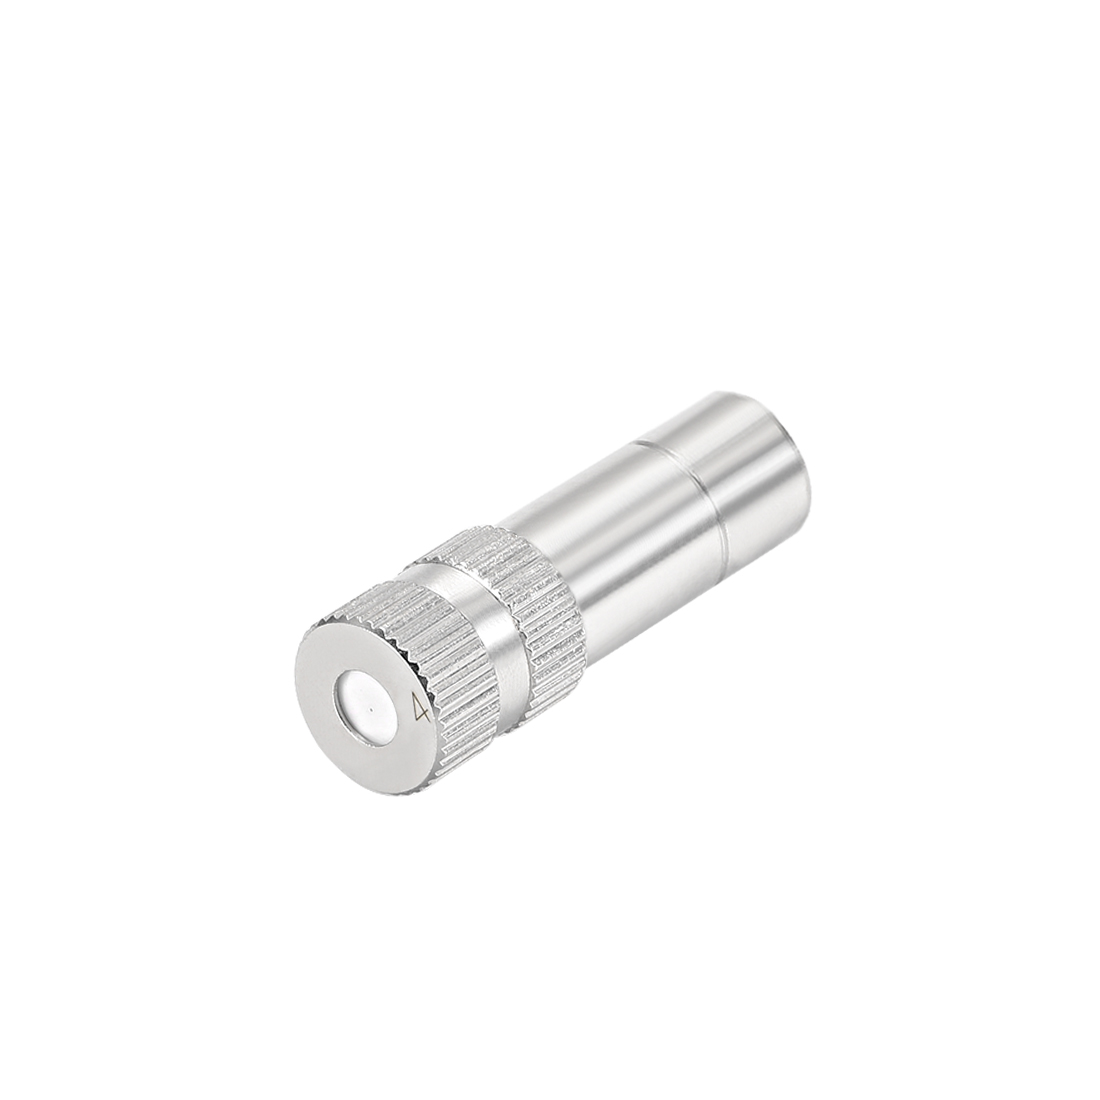 Brass Misting Nozzle 0.016-inch 0.4mm Orifice for 8mm Quick Connector